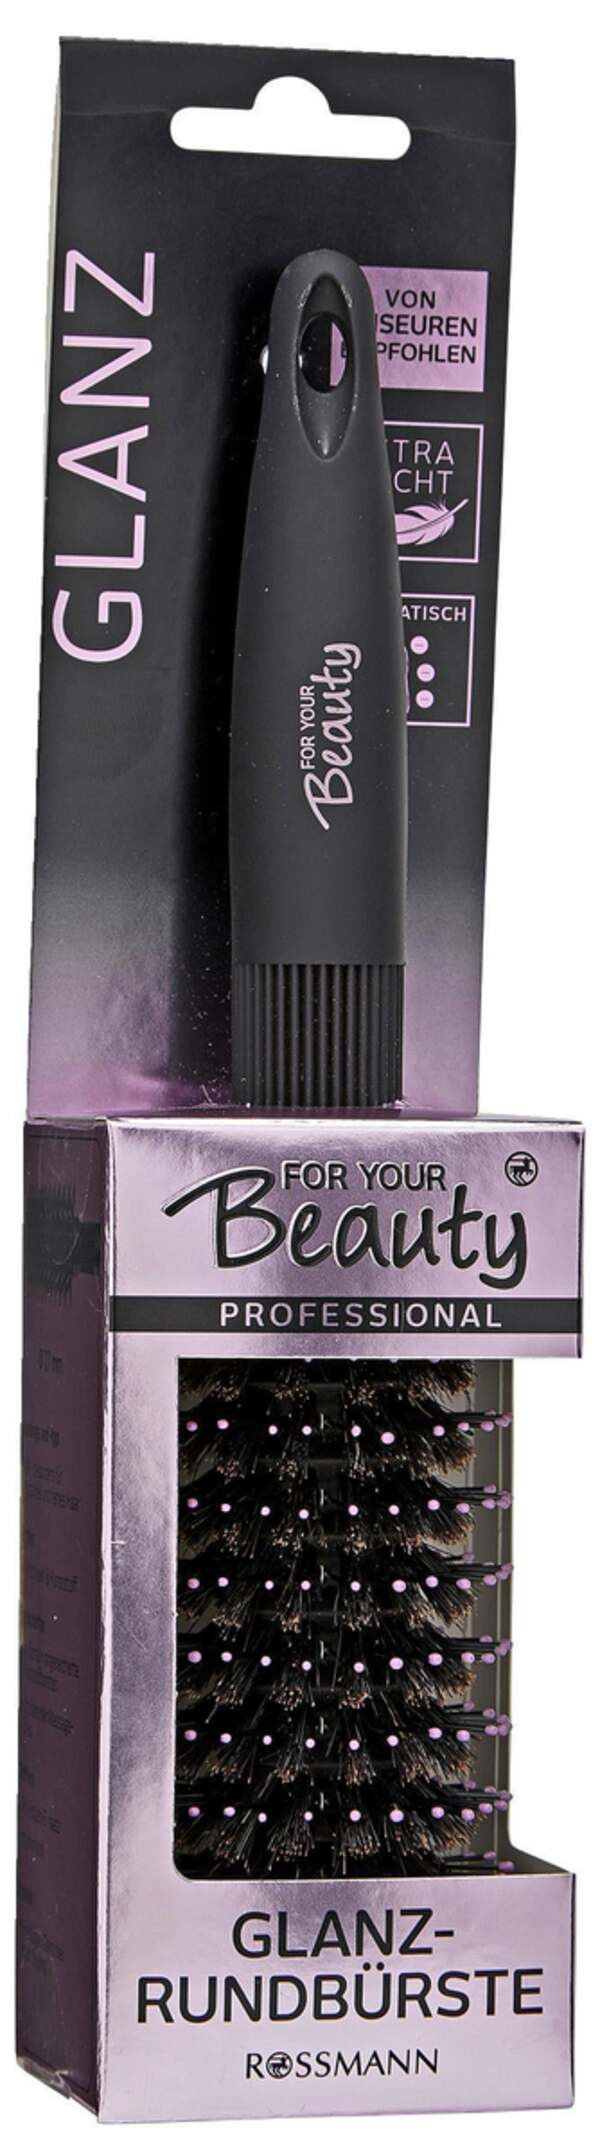 for your Beauty FOR YOUR BEAUTY PROFESSIONAL GLANZ-RUNDBÜRSTE